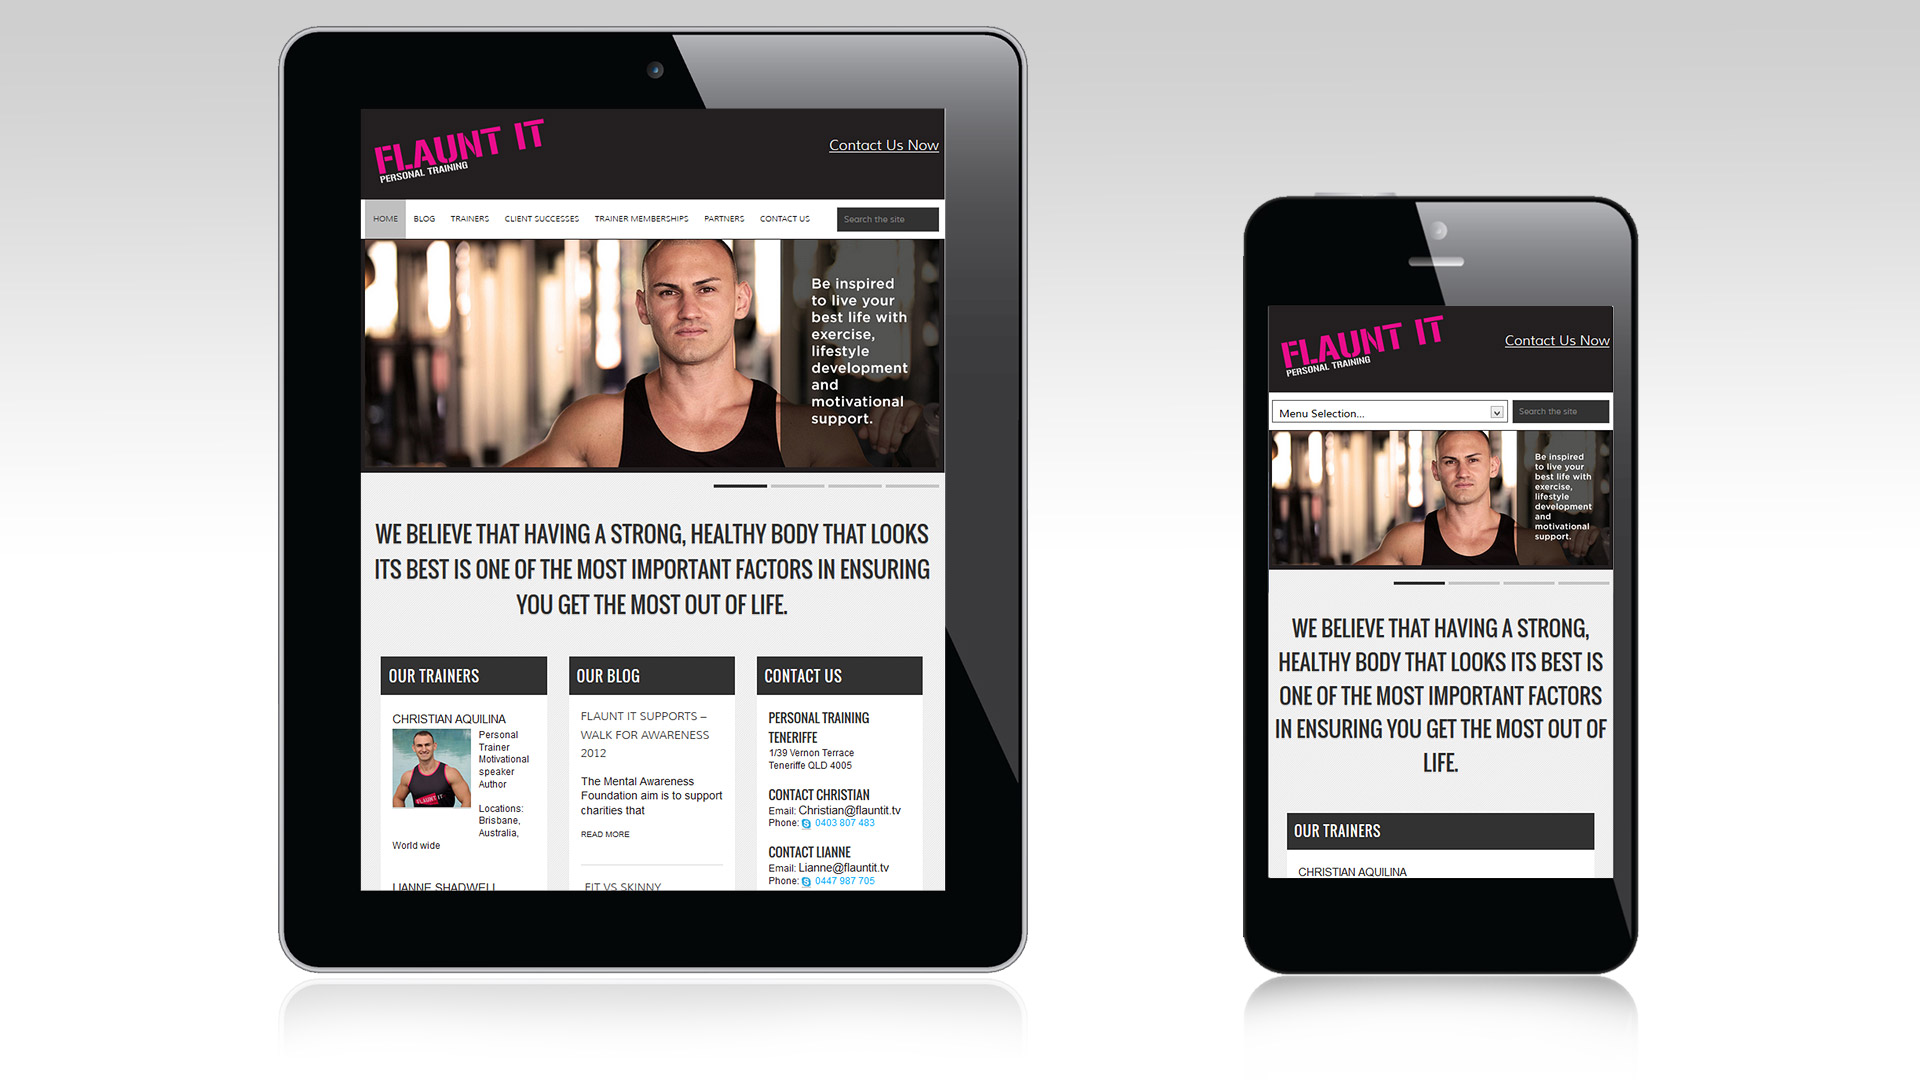 Flaunt It website responsive mobile and tablet views